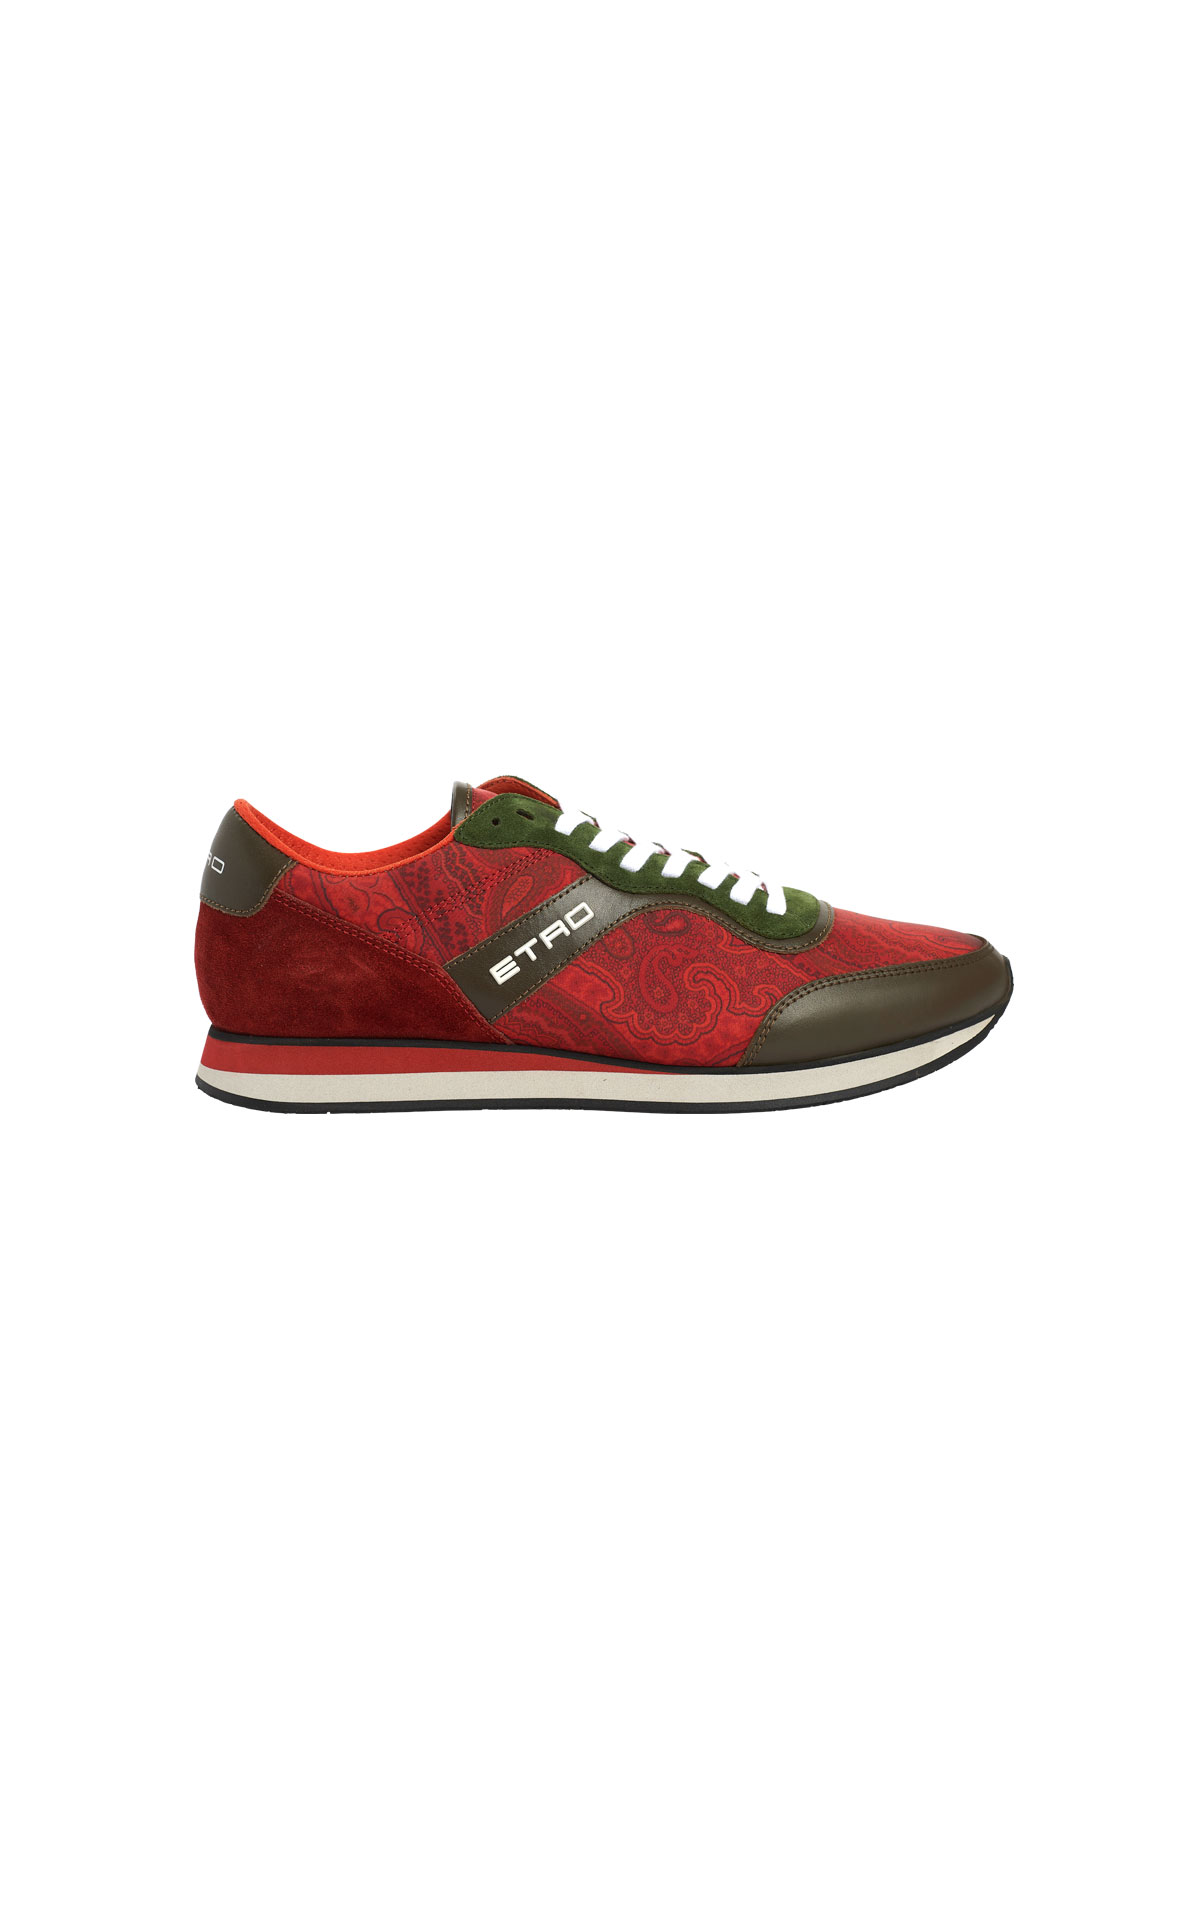 Red sneakers etro